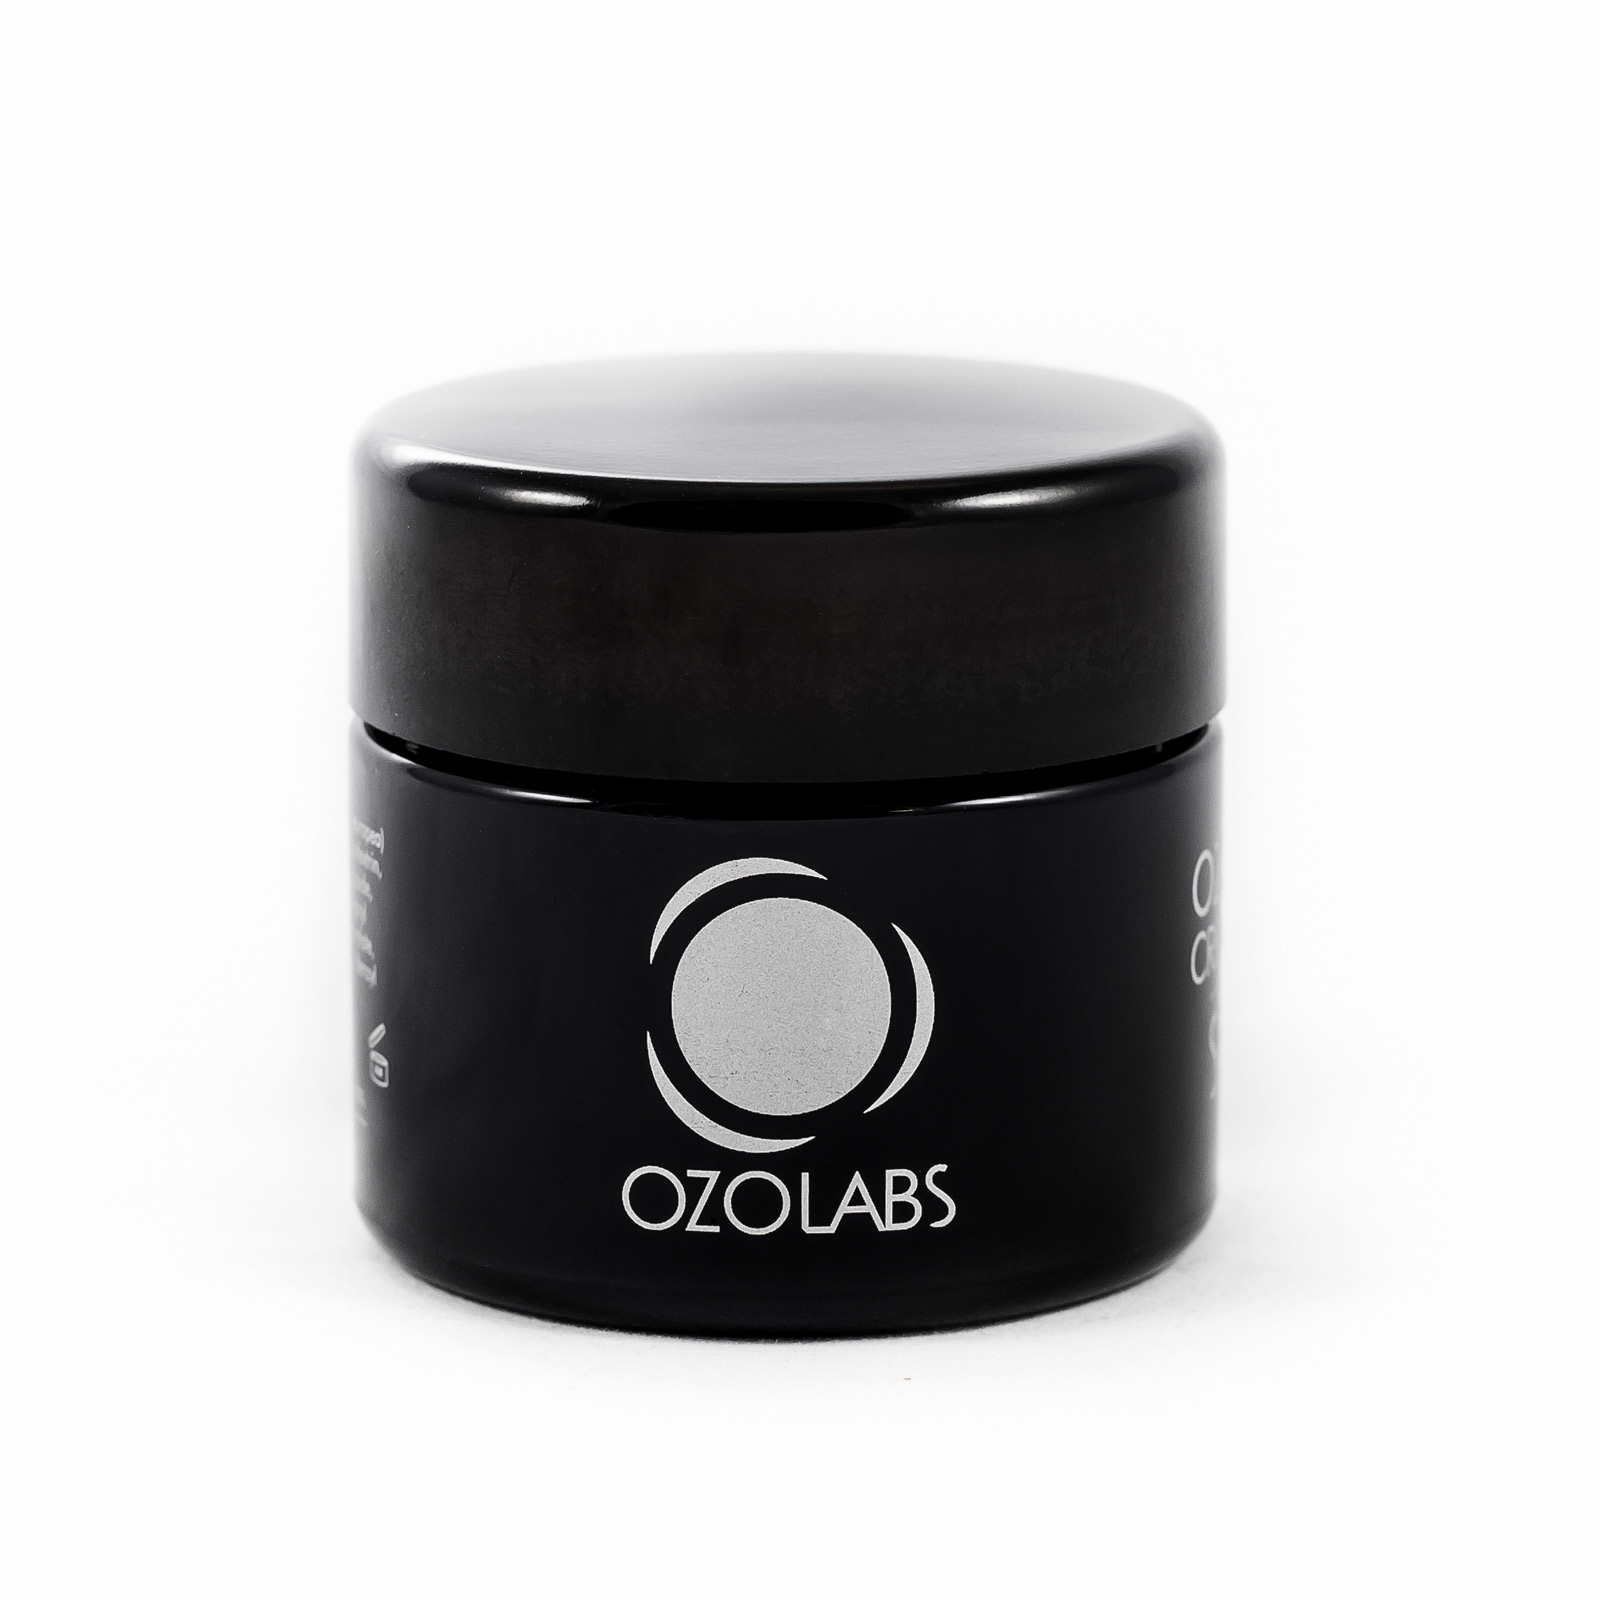 OZONE ORGANIC SKIN CARE CREAM 1.7 FL.OZ./50 CC.